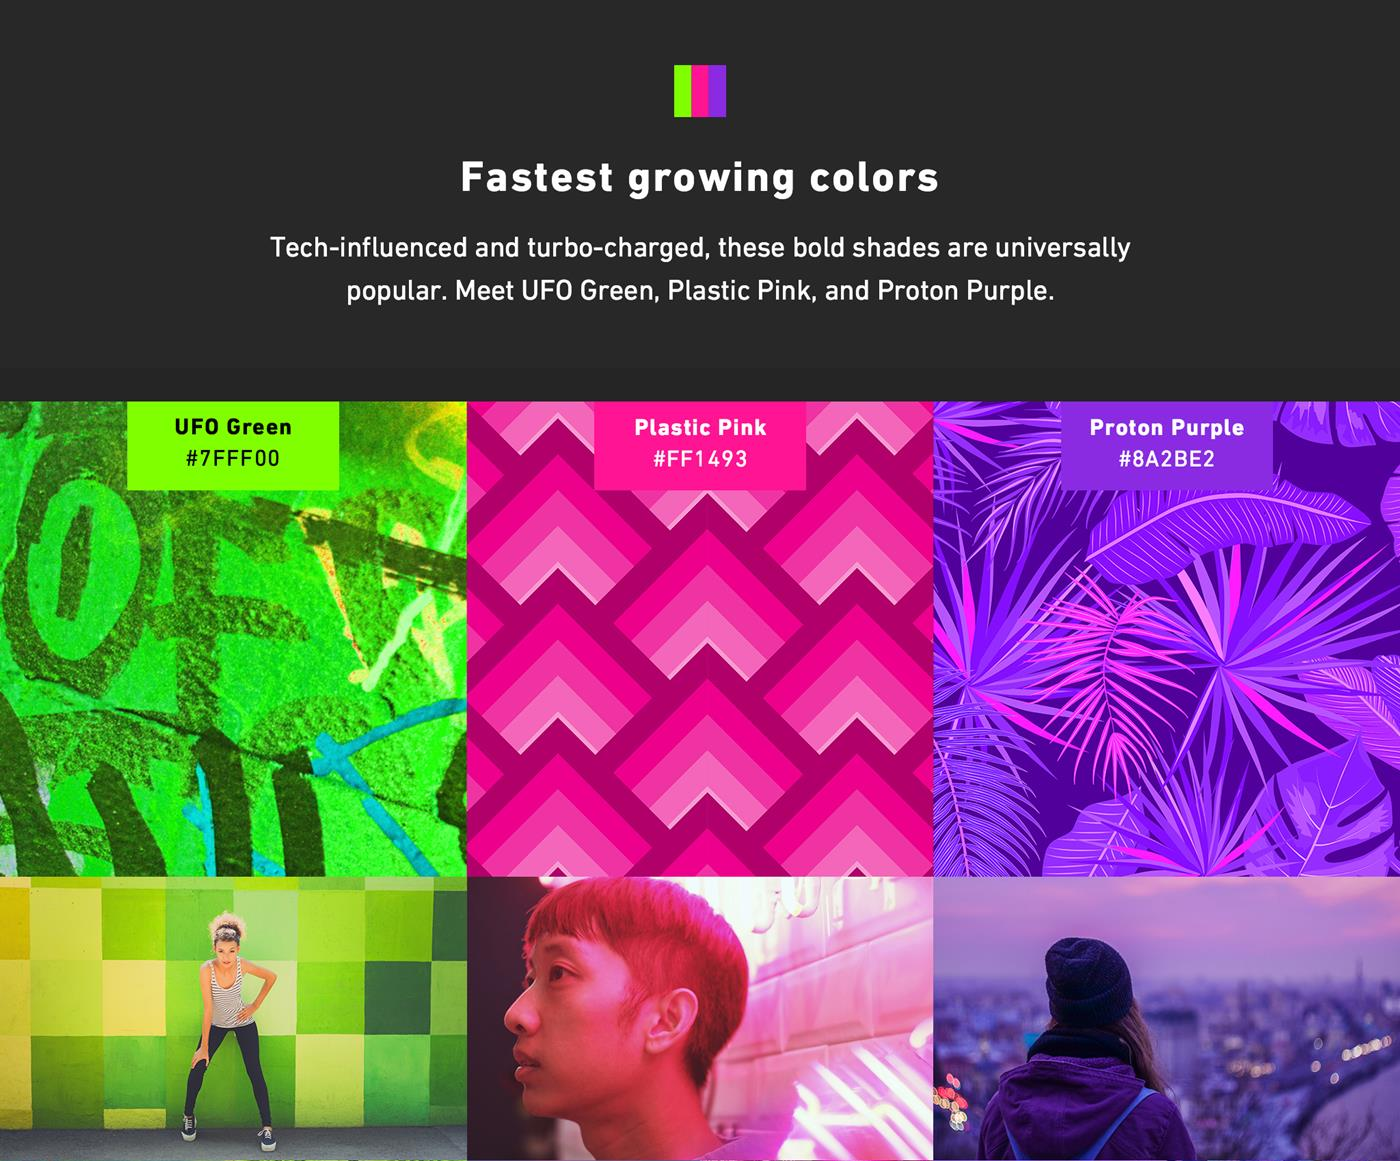 Shutterstock's 2019 Color Trends Infographic Shares Up-And-Coming Hues To Note